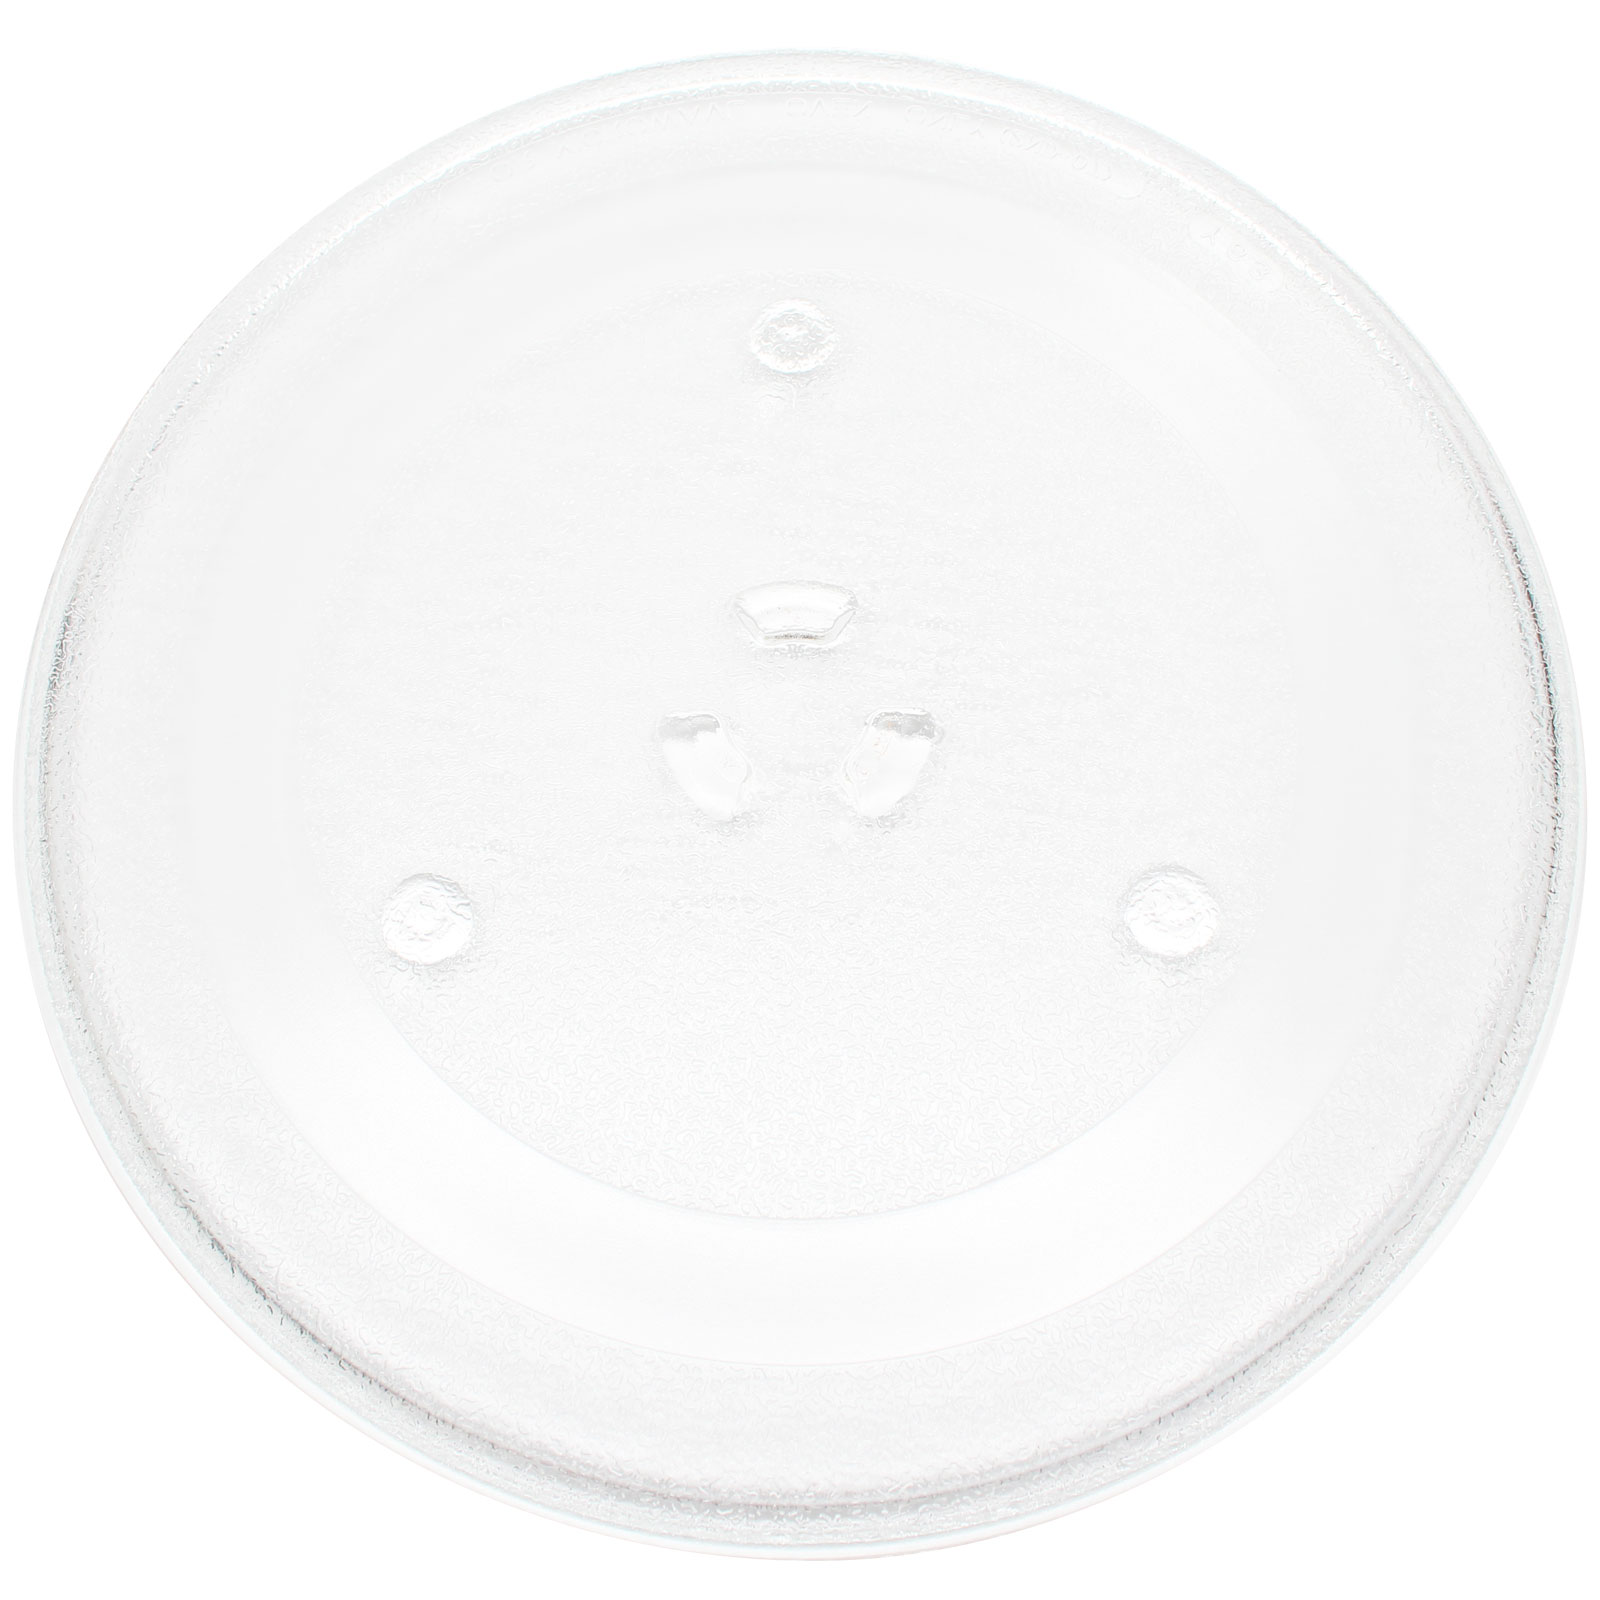 """2-Pack Replacement Samsung MO720W Microwave Glass Plate - Compatible Samsung DE74-20102 Microwave Glass Turntable Tray - 11 1/4"""" (285mm) - image 2 de 4"""